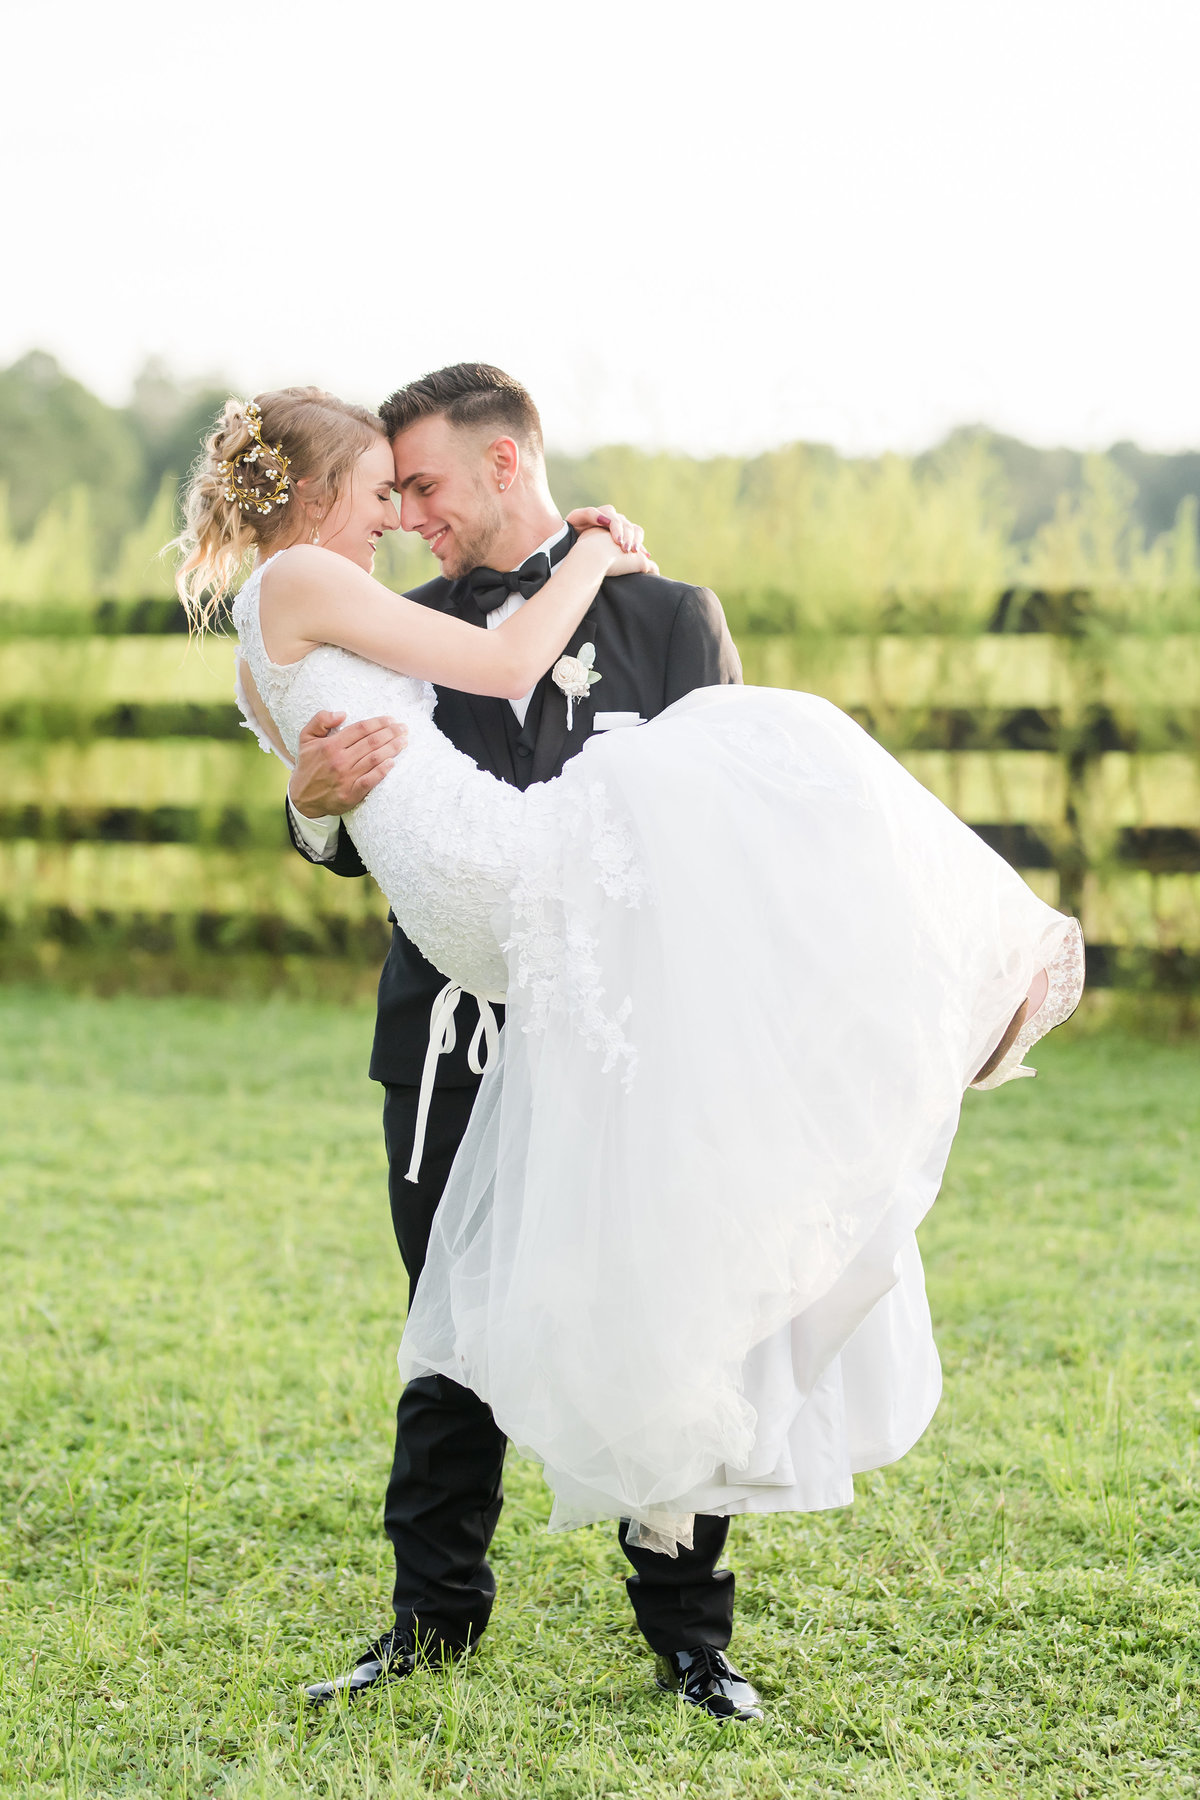 Groom picks up bride in cradle in a field